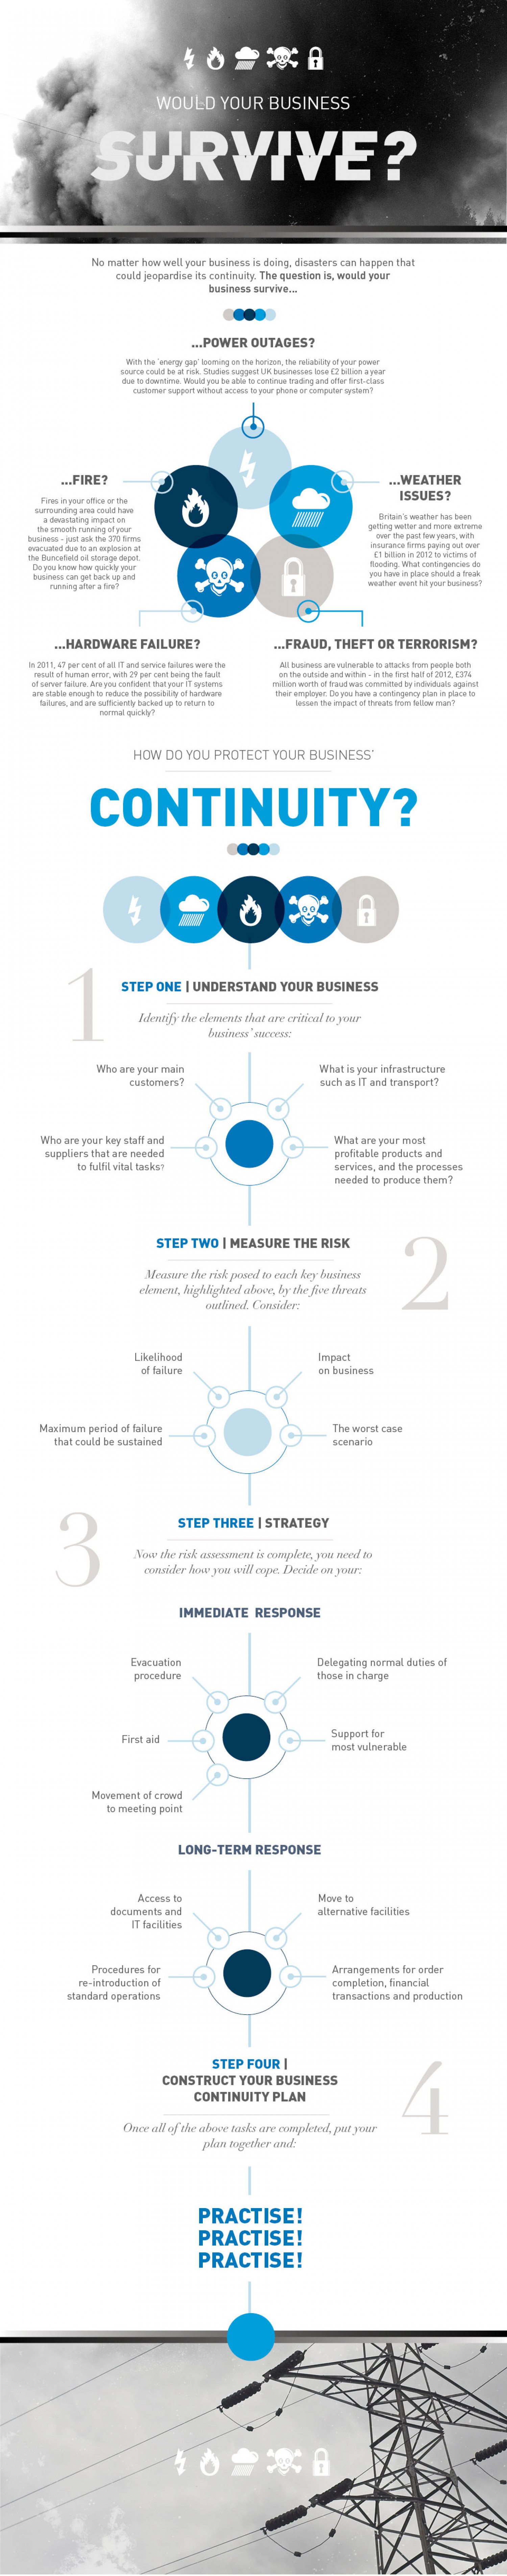 Would your business survive? Infographic